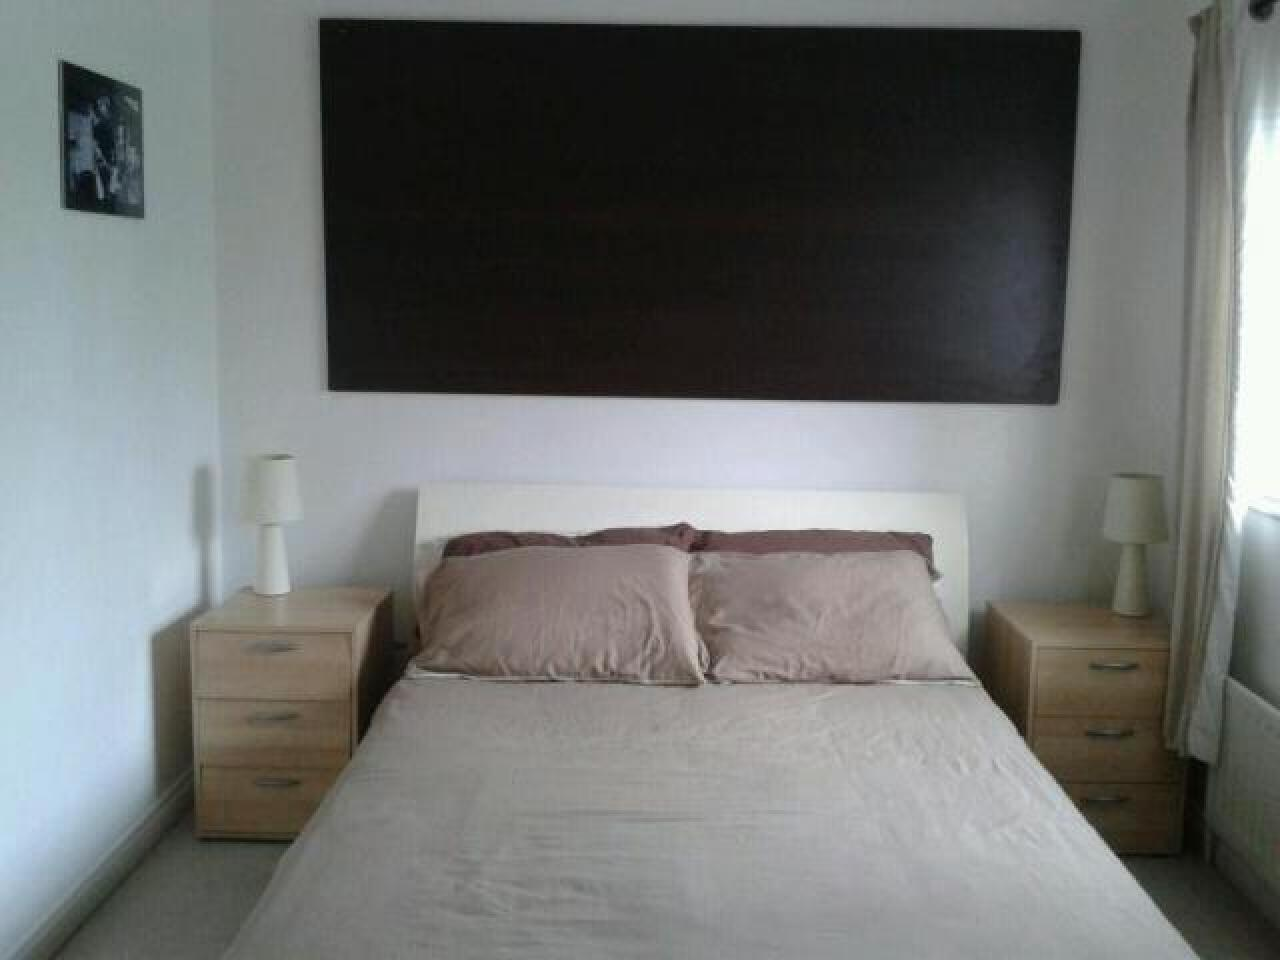 3 Bed House, Keel Close Barking, IG1 1 650 £ — Available Now - 6